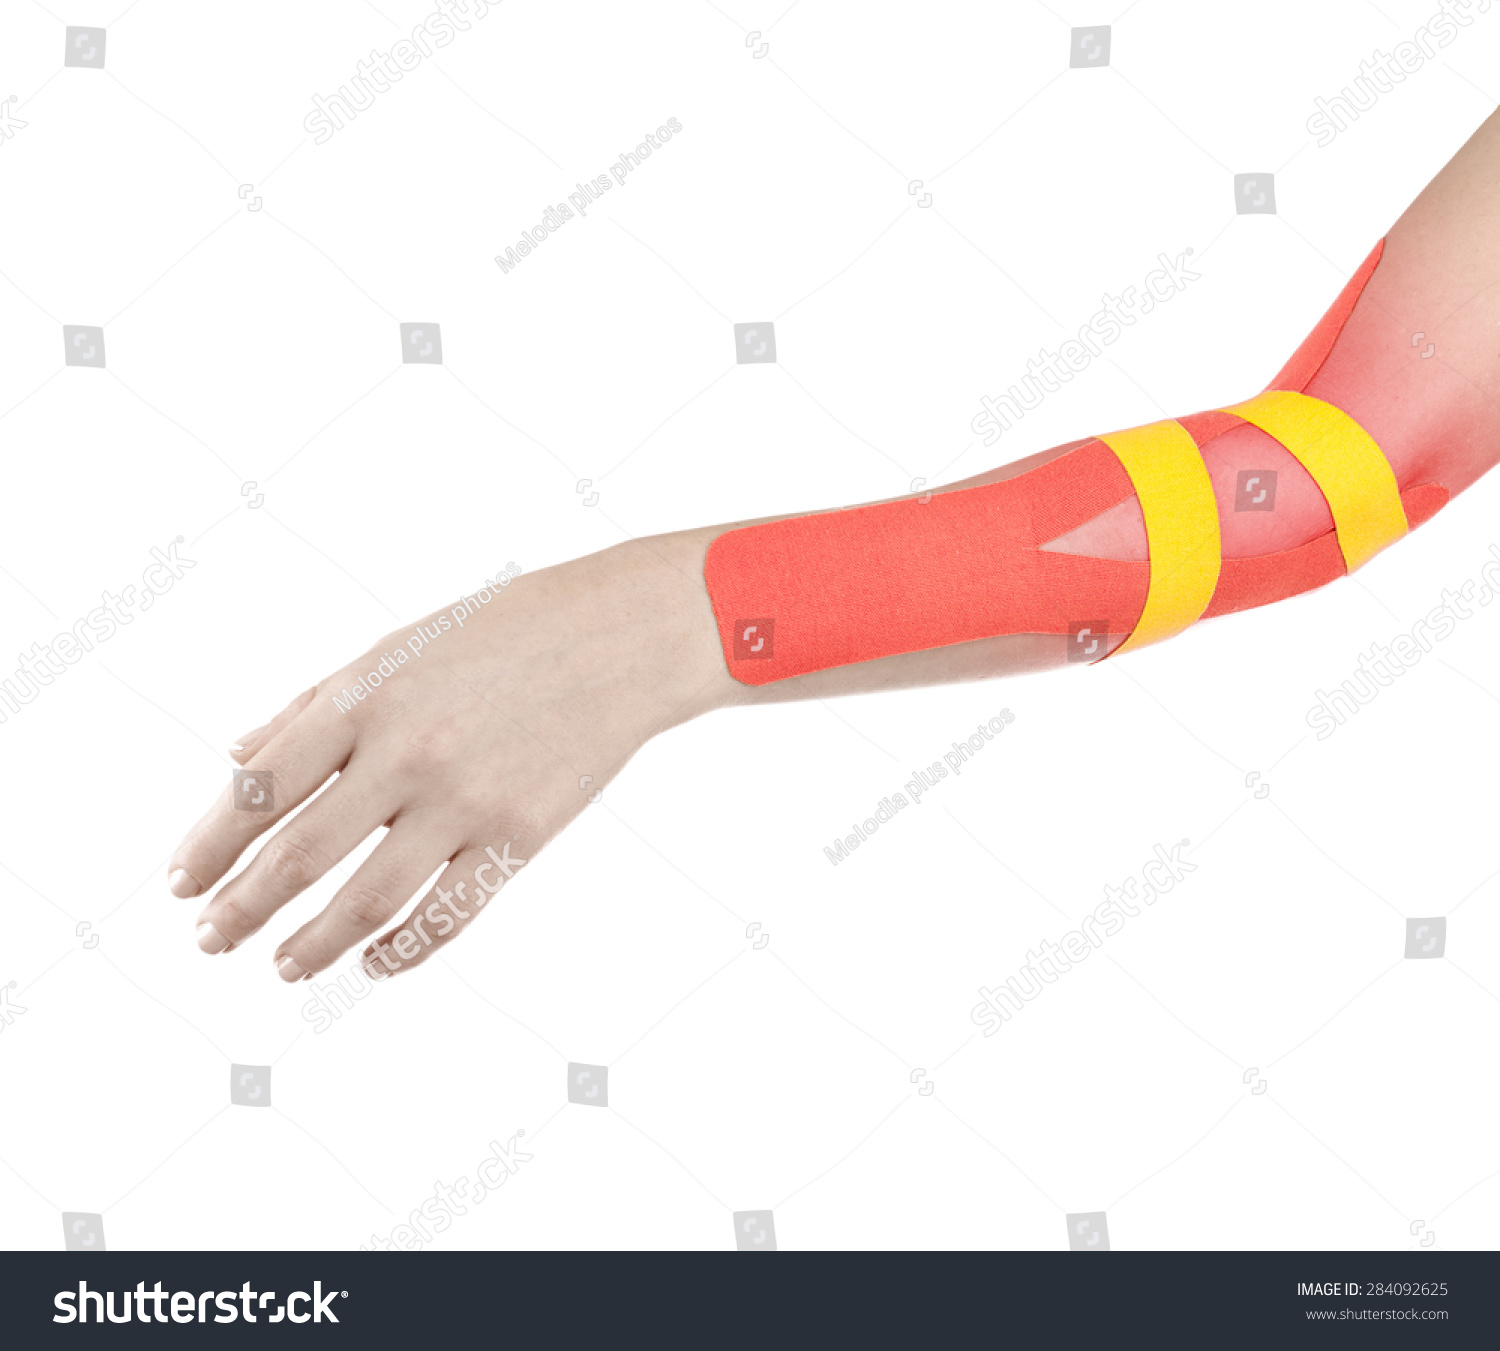 Human elbow pain with an anatomy injury caused by sports accident or ...